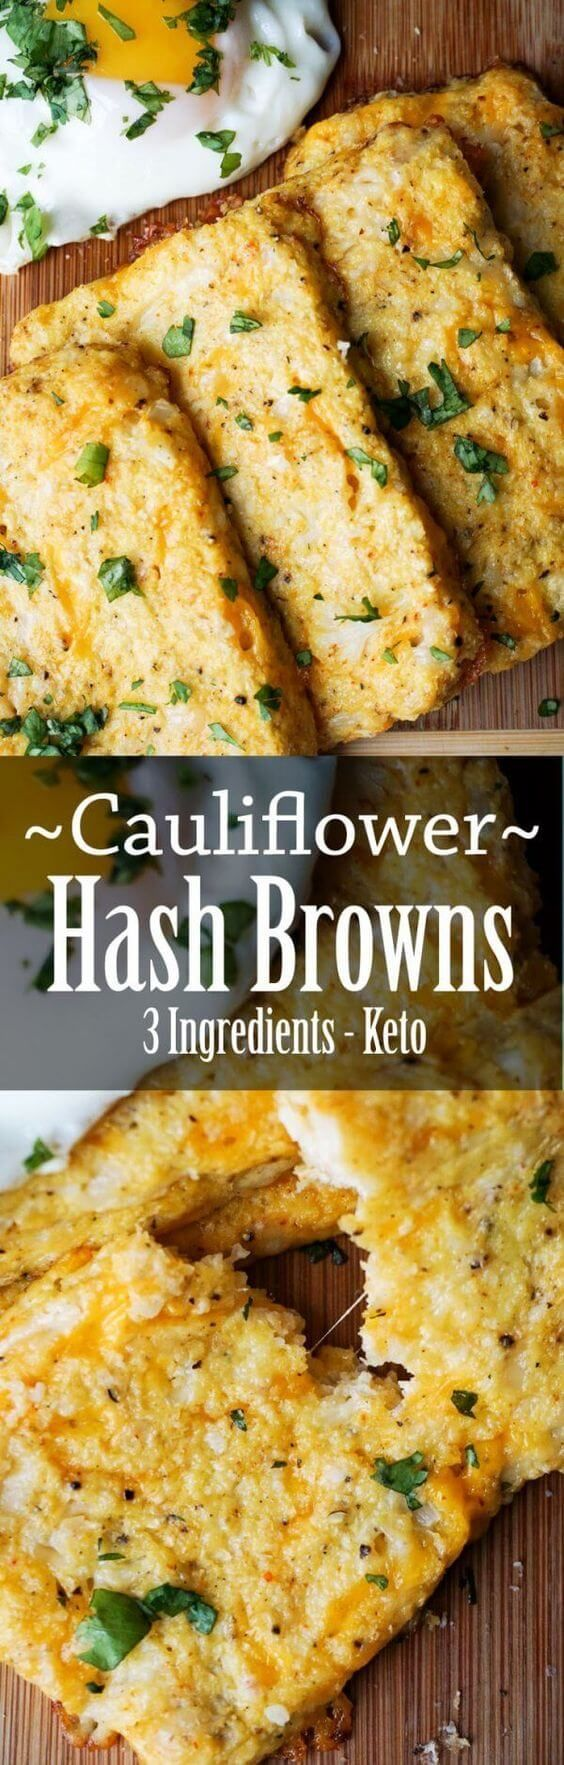 3 Ingredient Keto Cauliflower Hash Browns Recipe